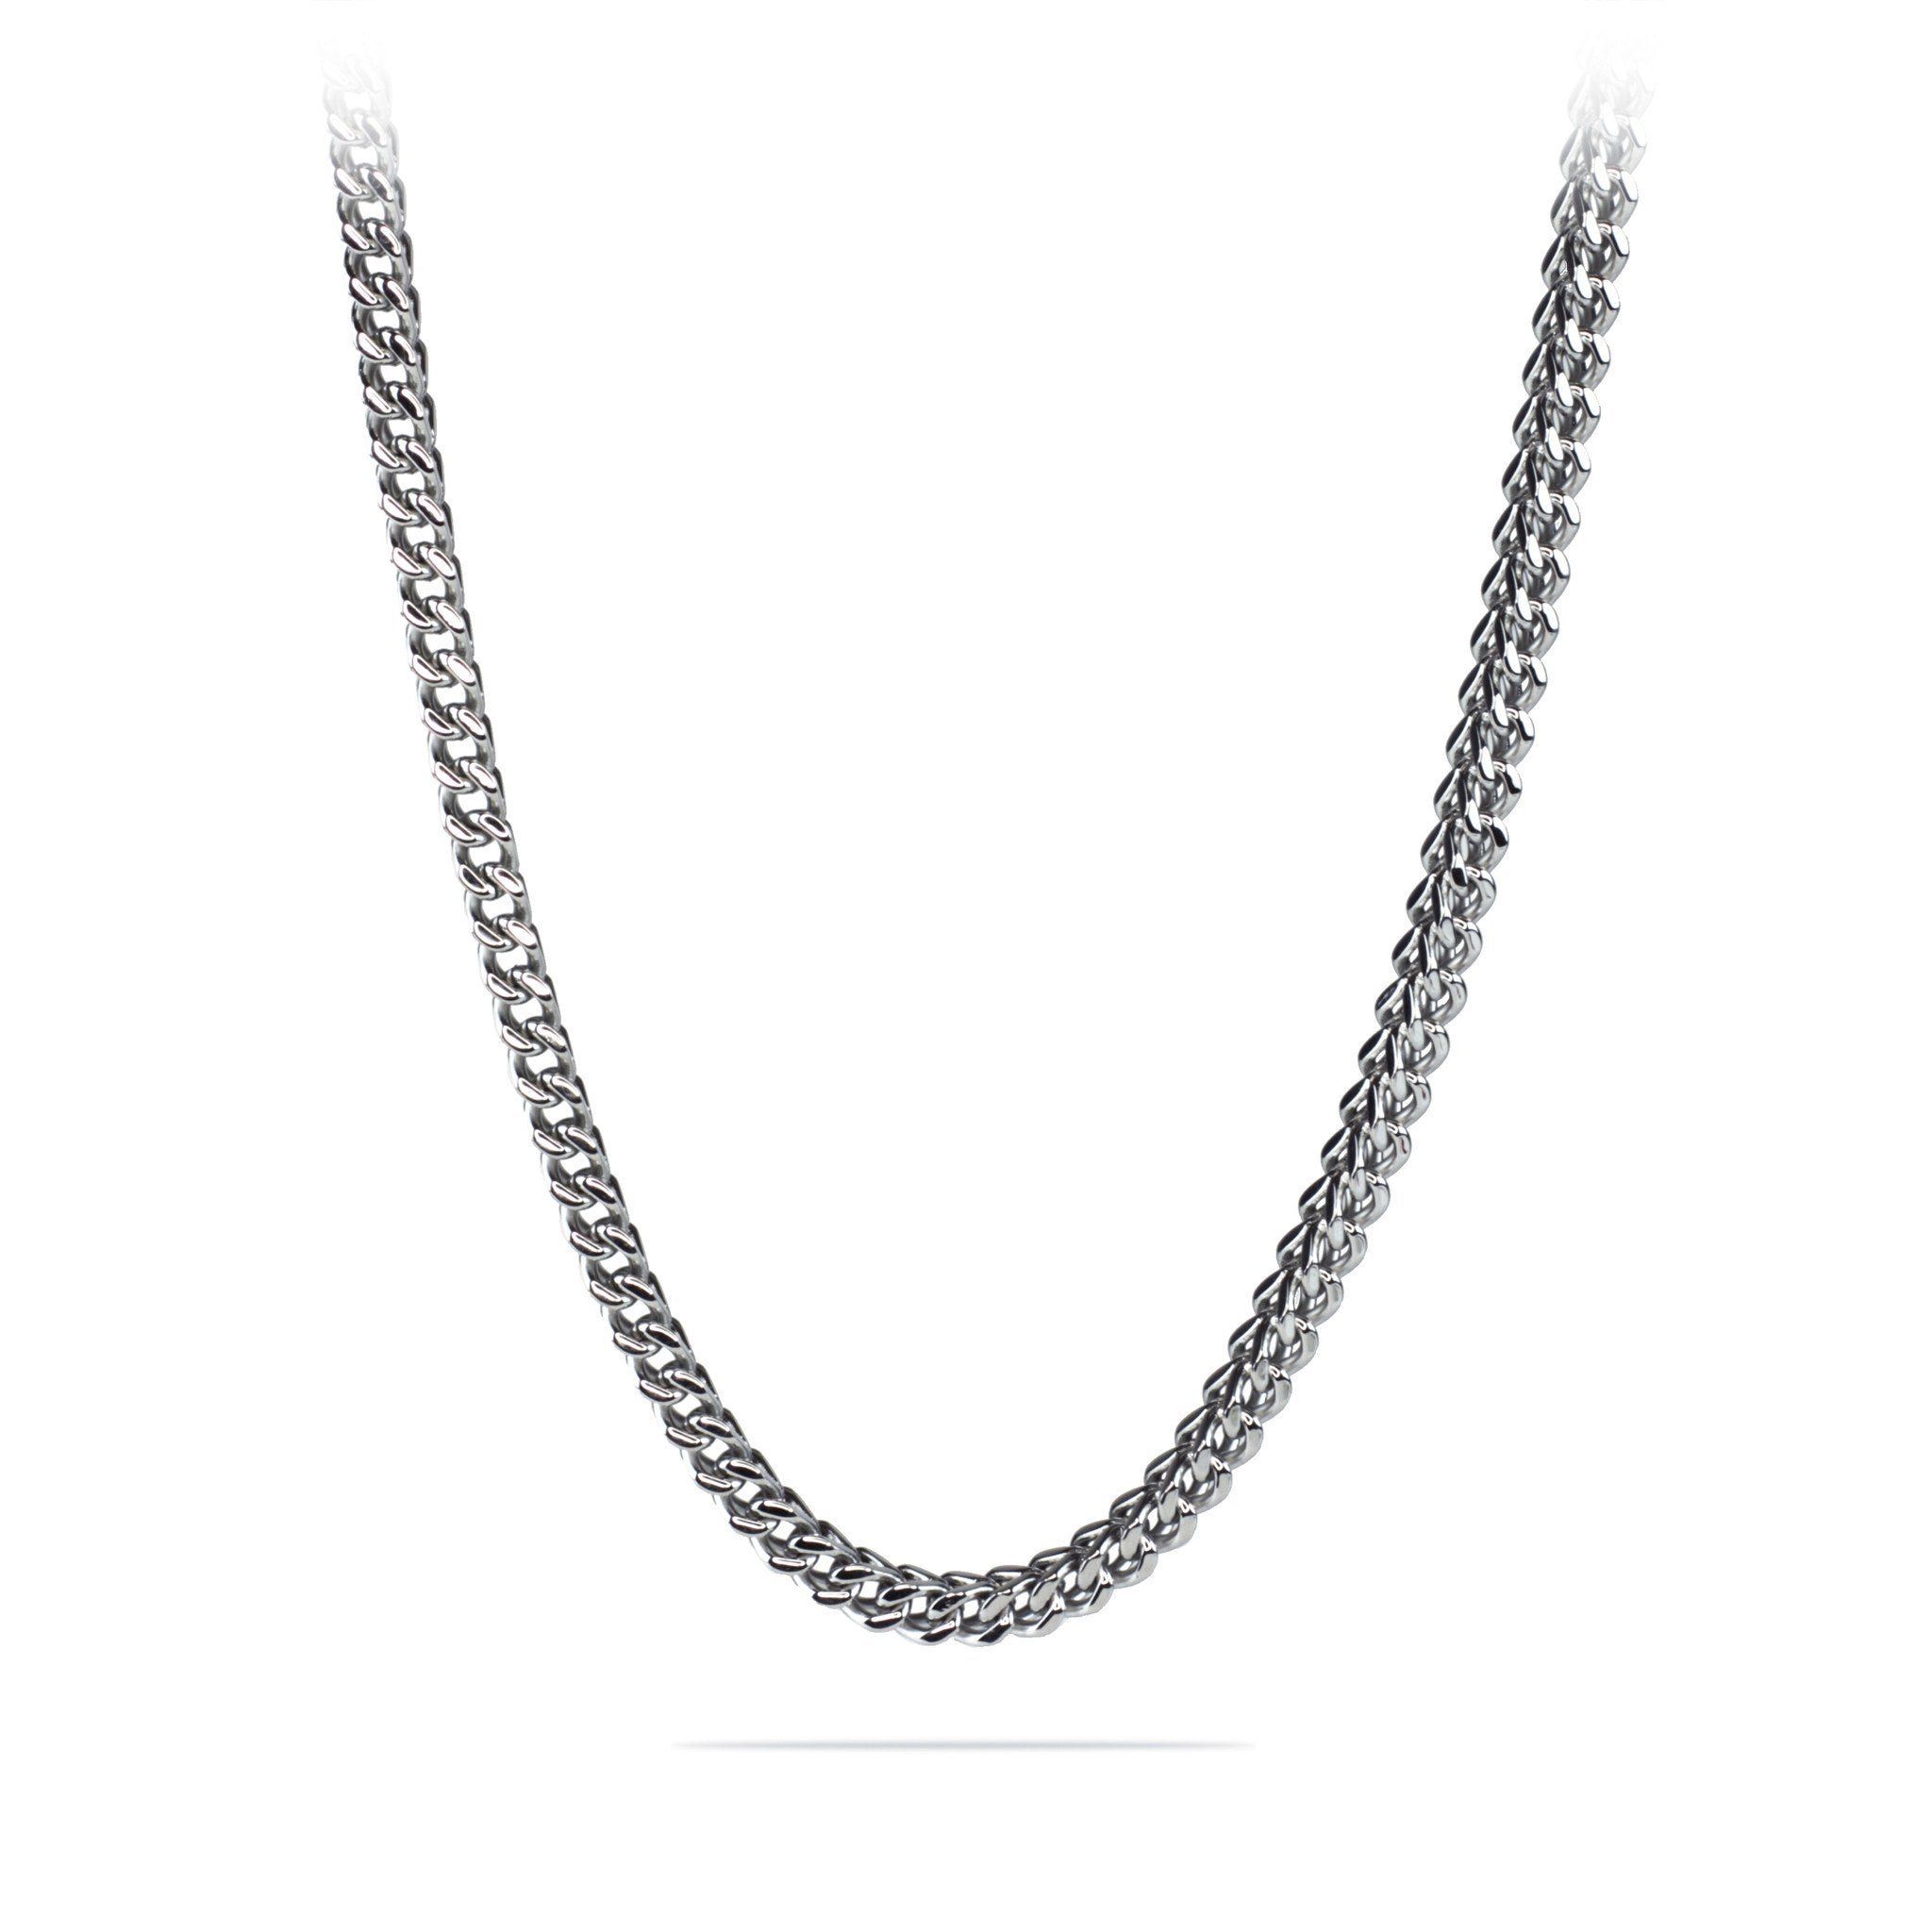 Stainless Steel Silver Franco Cuban Box Chain Necklace